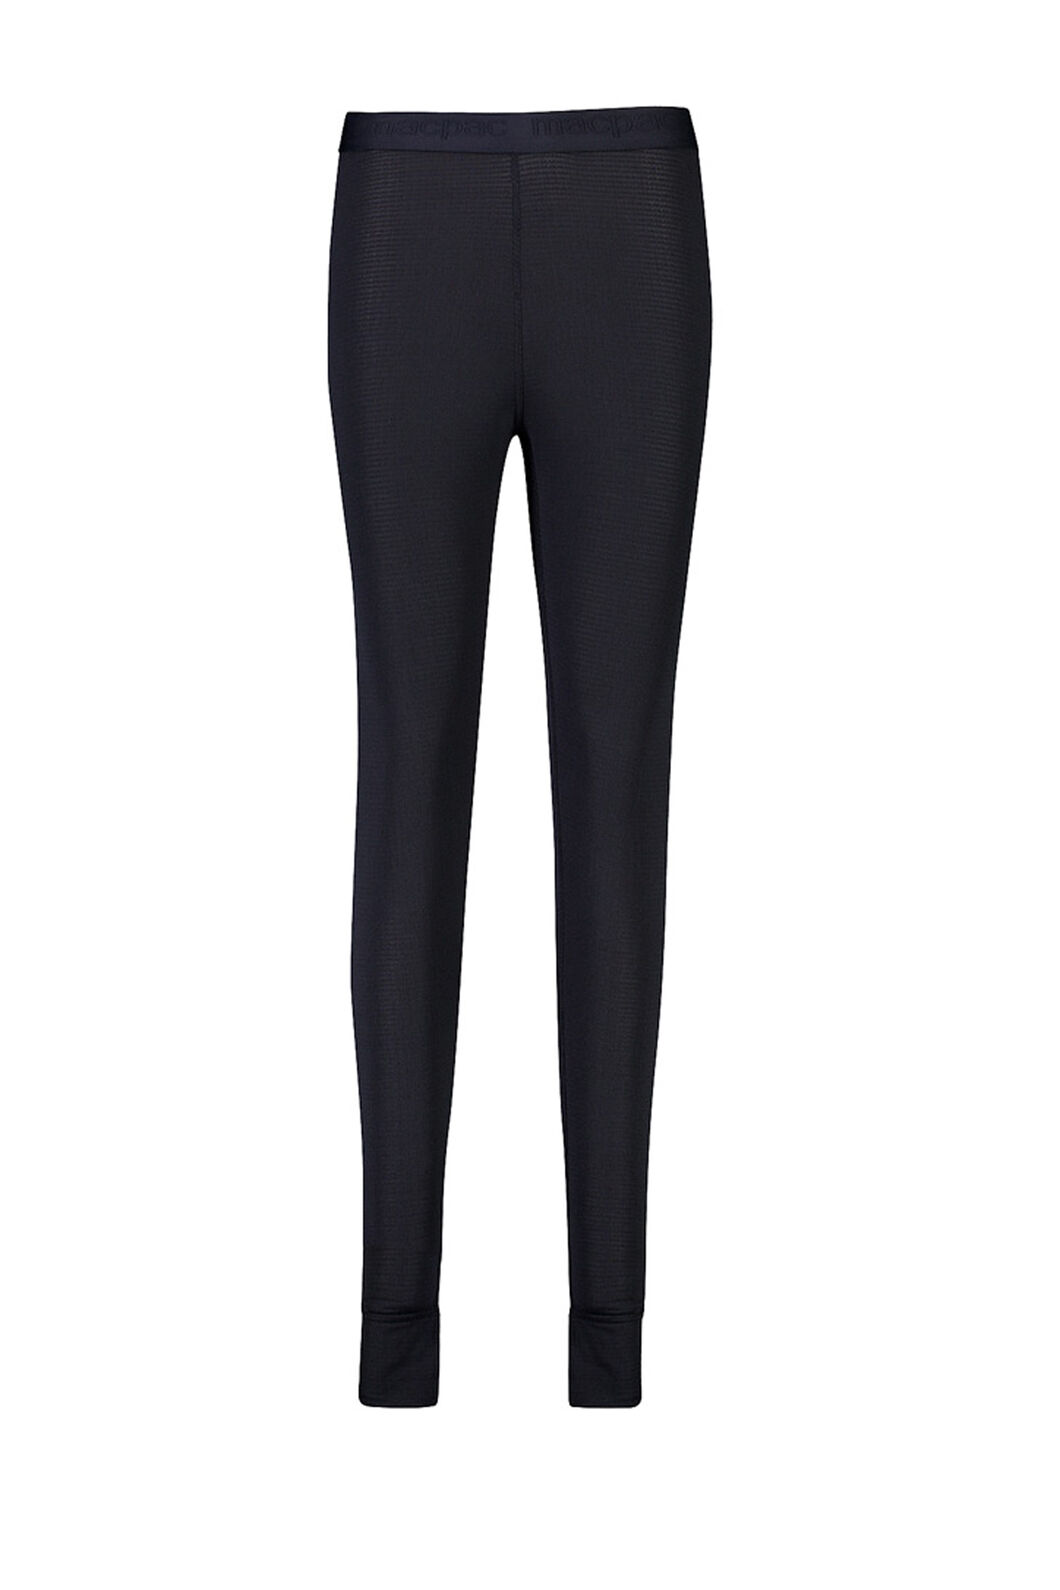 Macpac Prothermal Polartec® Long Johns — Women's, Black, hi-res